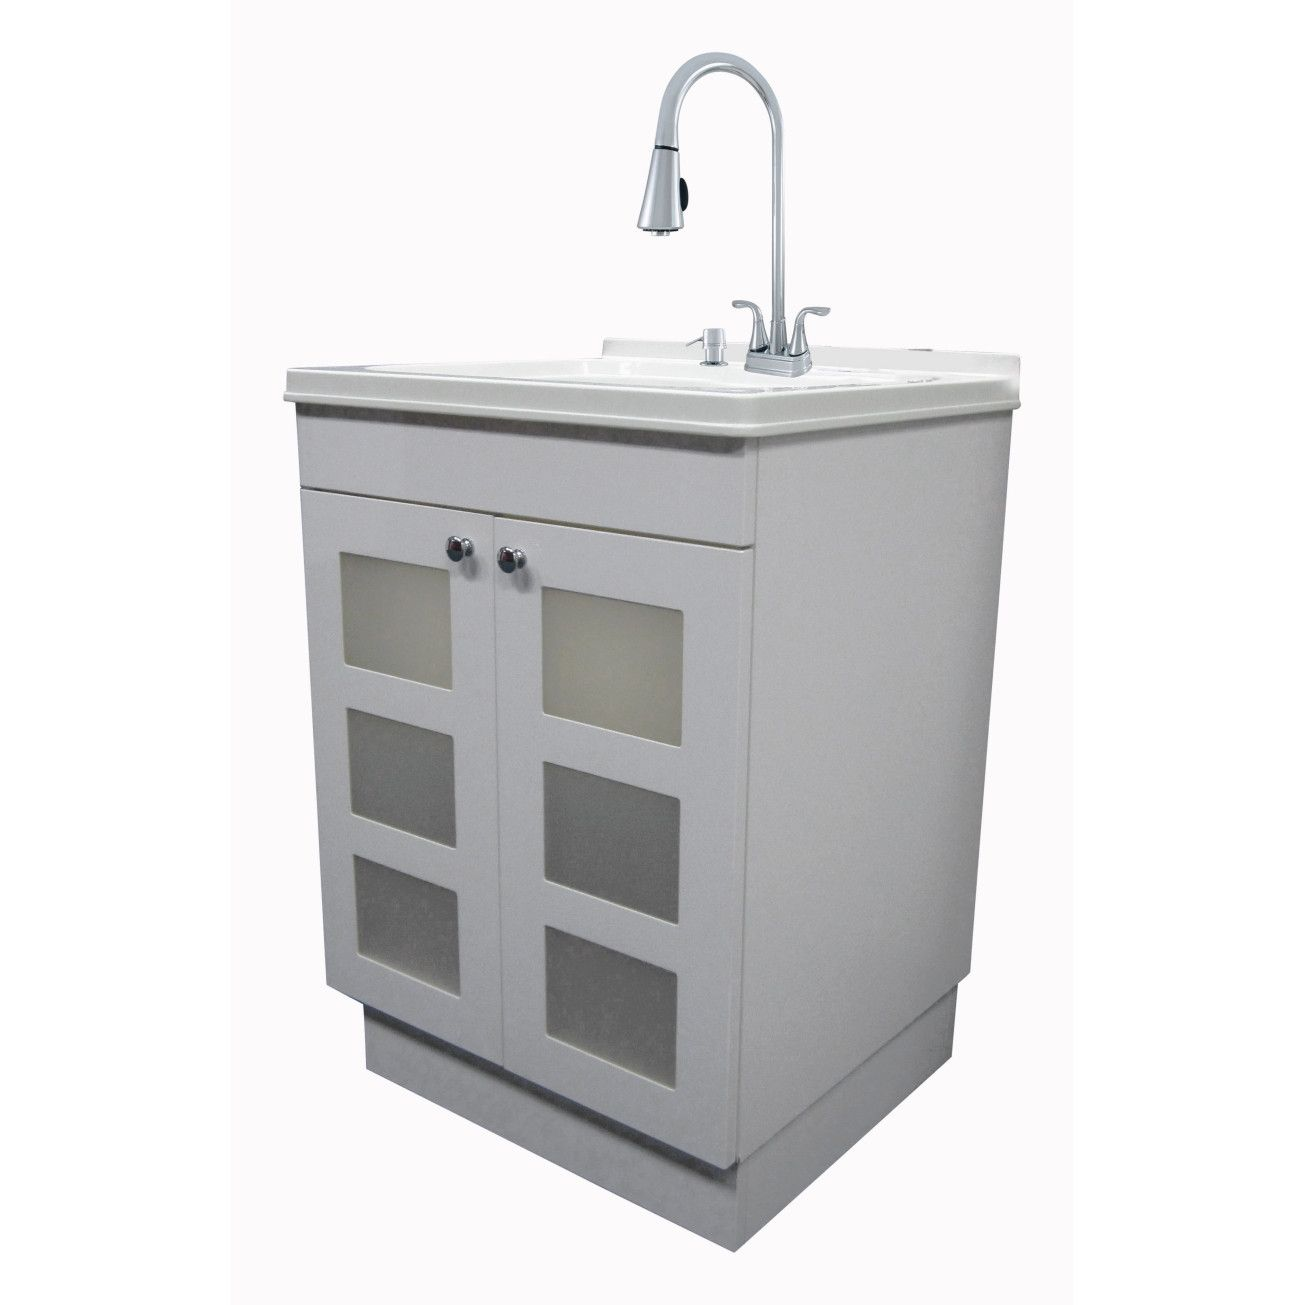 Luxury Kitchen Sink And Cabinet Combo Laundry Room Sink Utility